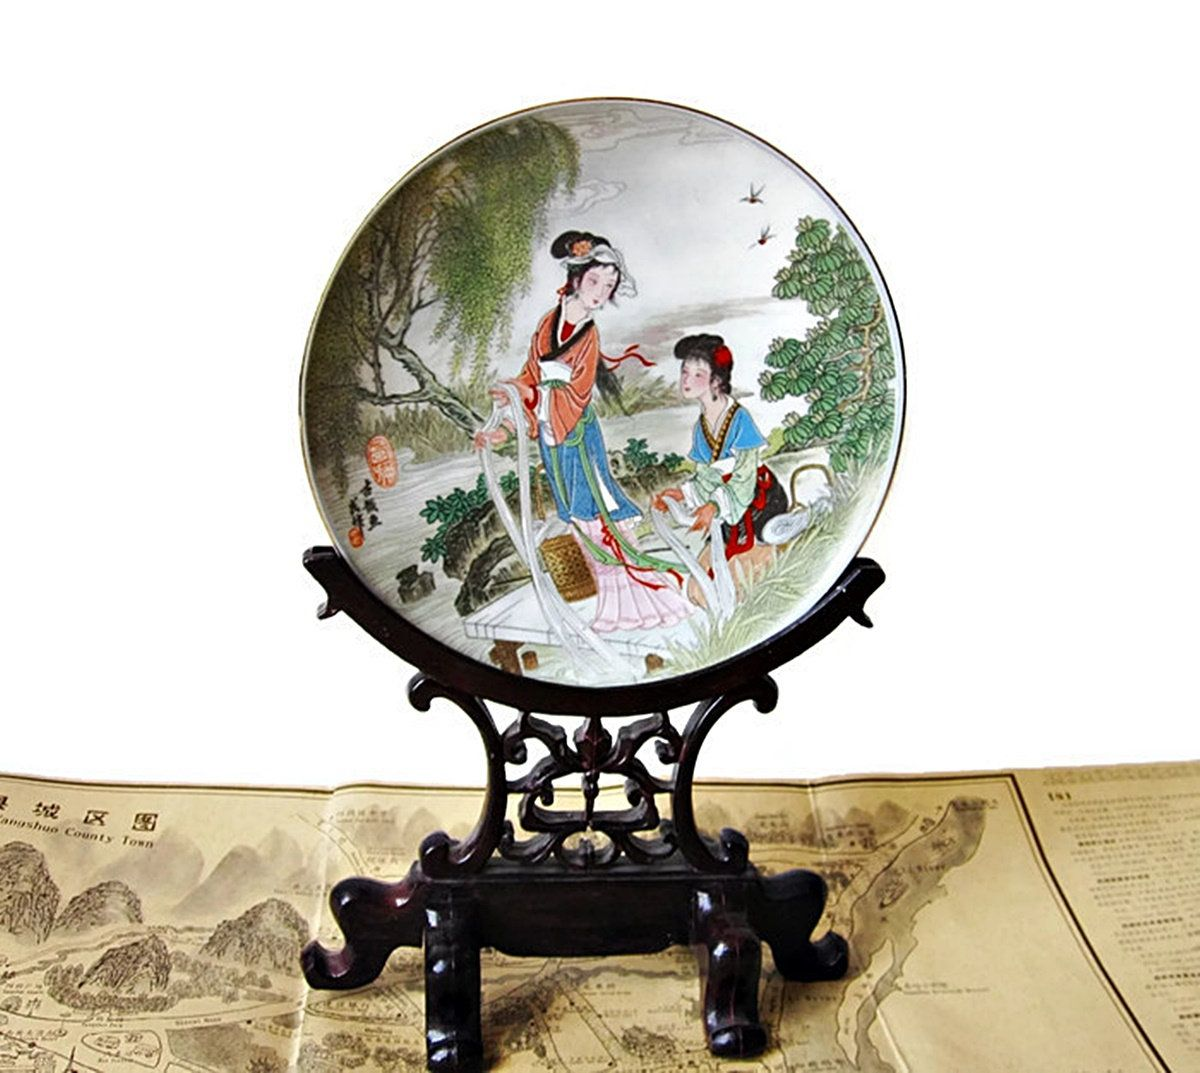 Japanese Ceramic Display Plate And Stand Geisha Girls In Garden Carved Wood Grain Plate Stand By Latrouvaill Japanese Ceramics Plate Display Asian Antiques